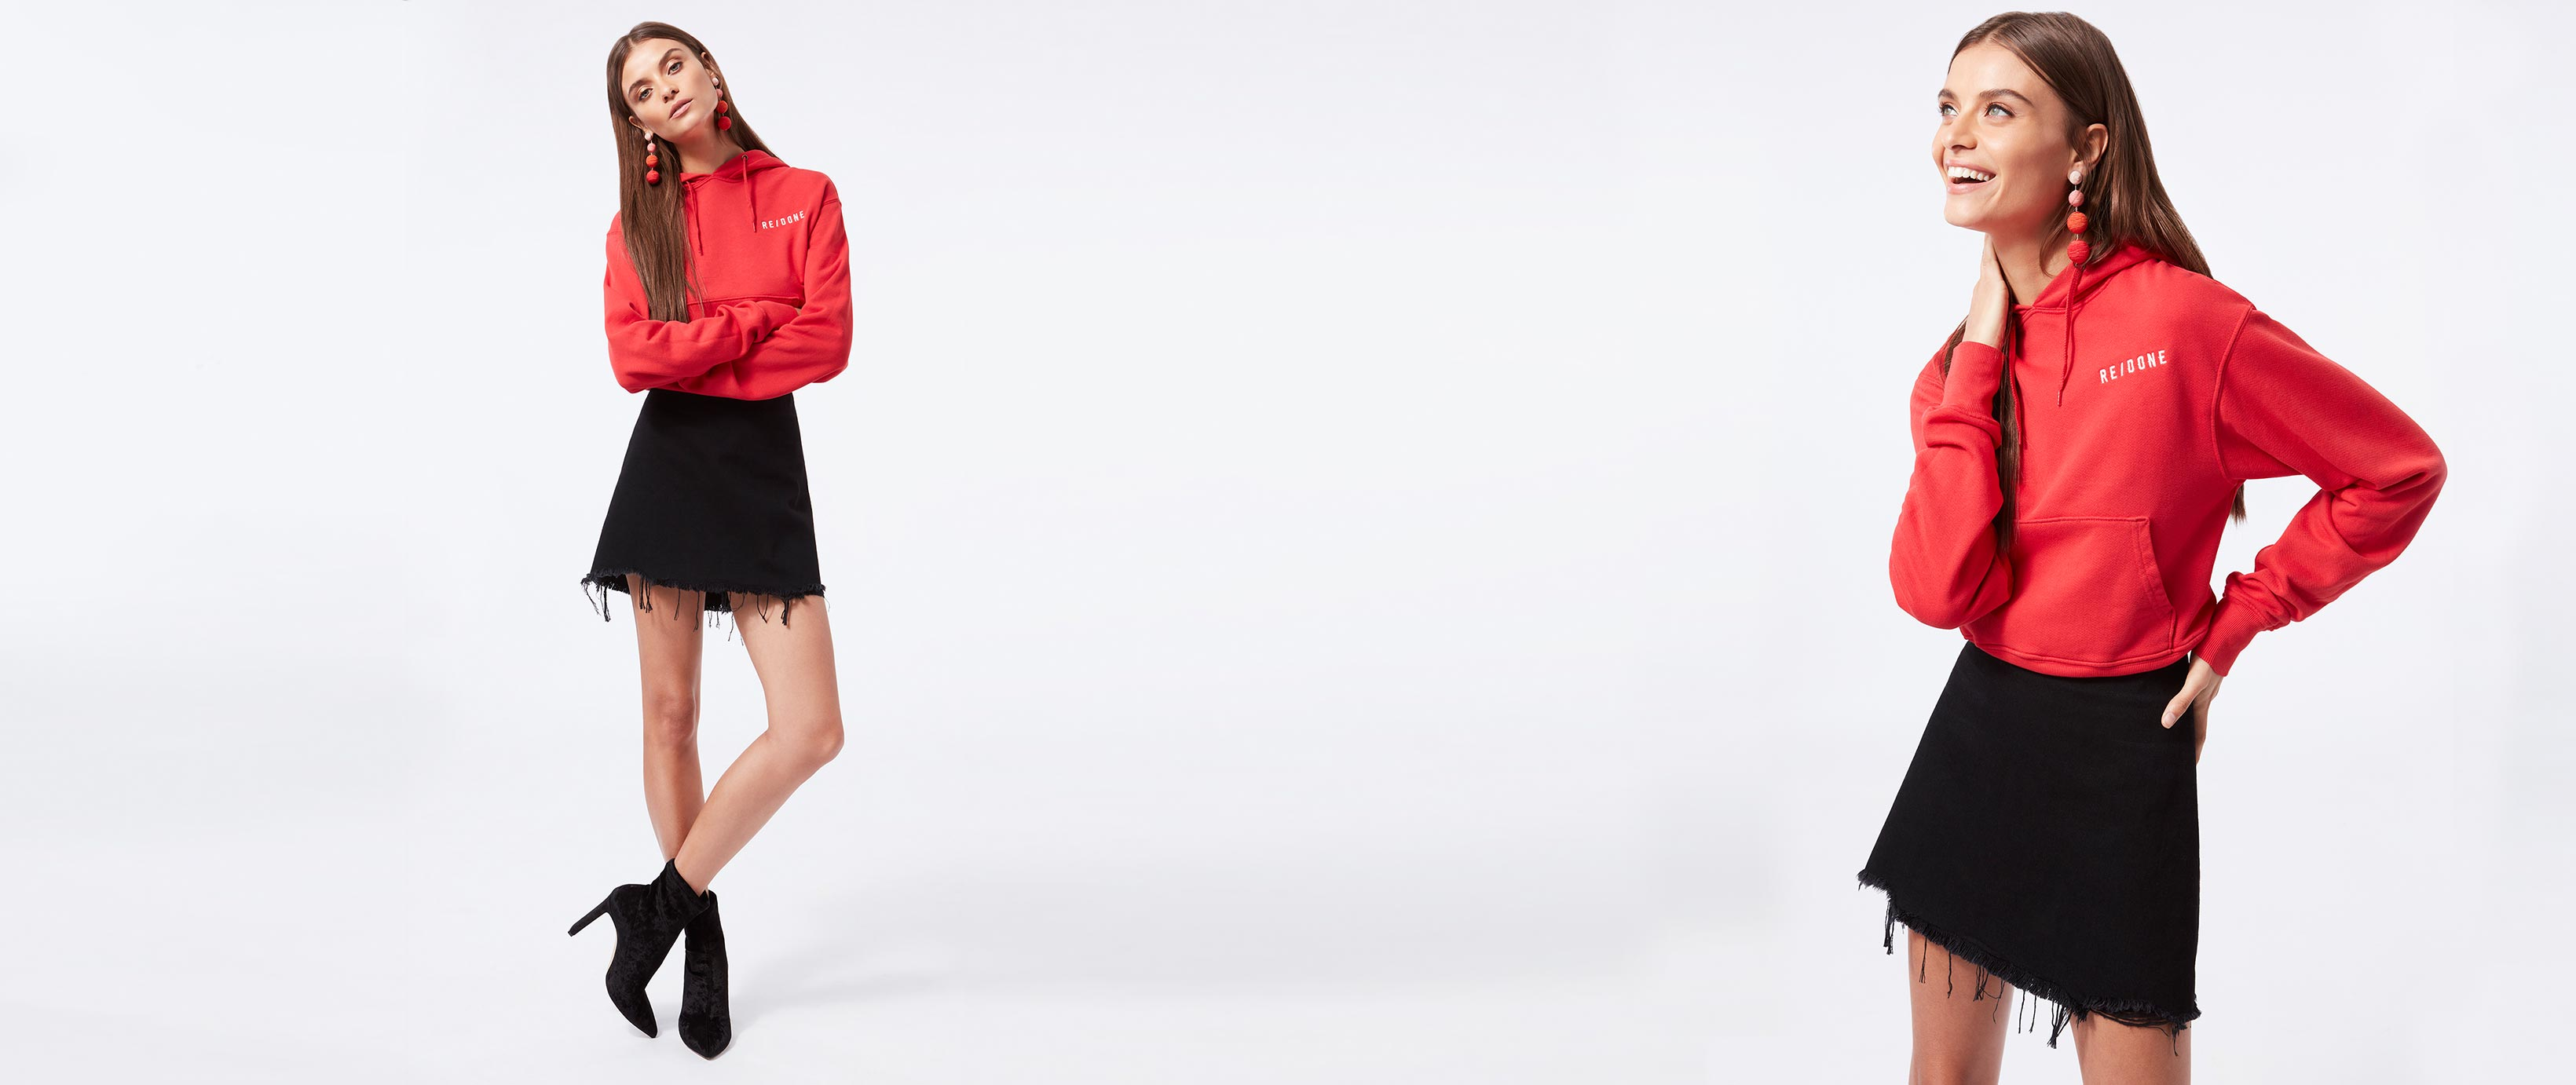 It-Girl Formula: Athletic-inspired pieces + Cool wardrobe classics + Novelty accessories = An of-the-moment look